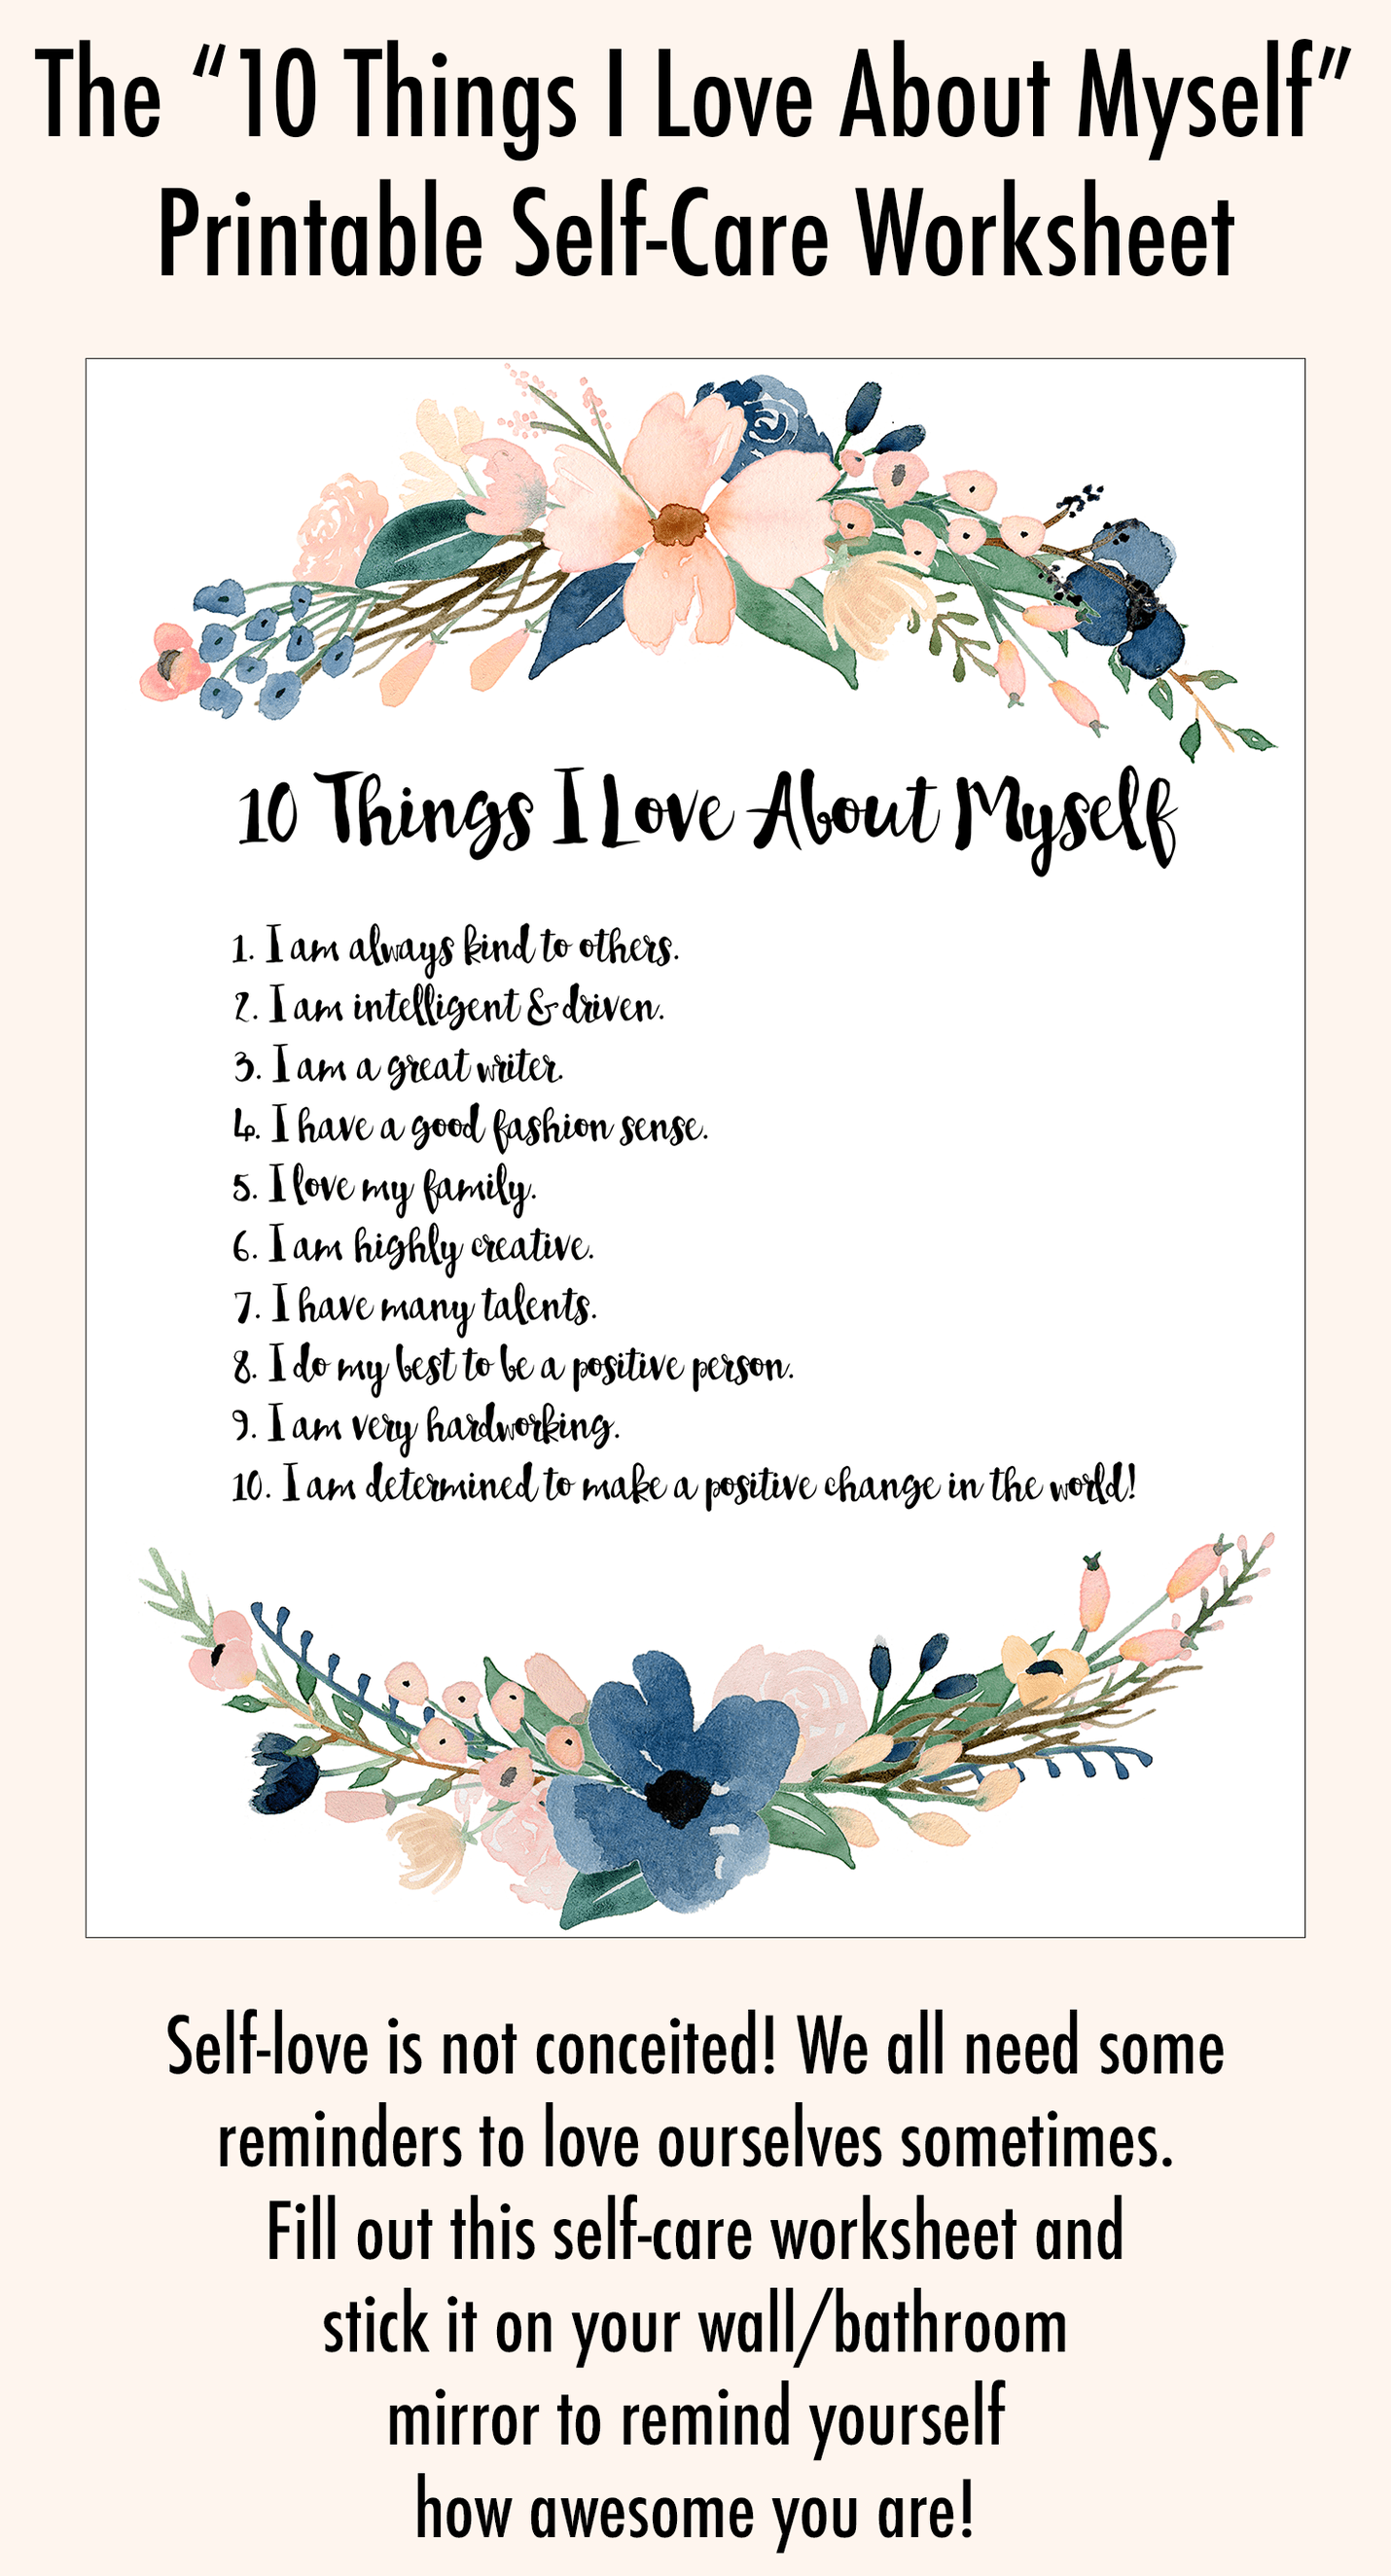 Self Love Exercise 10 Things I Love About Myself